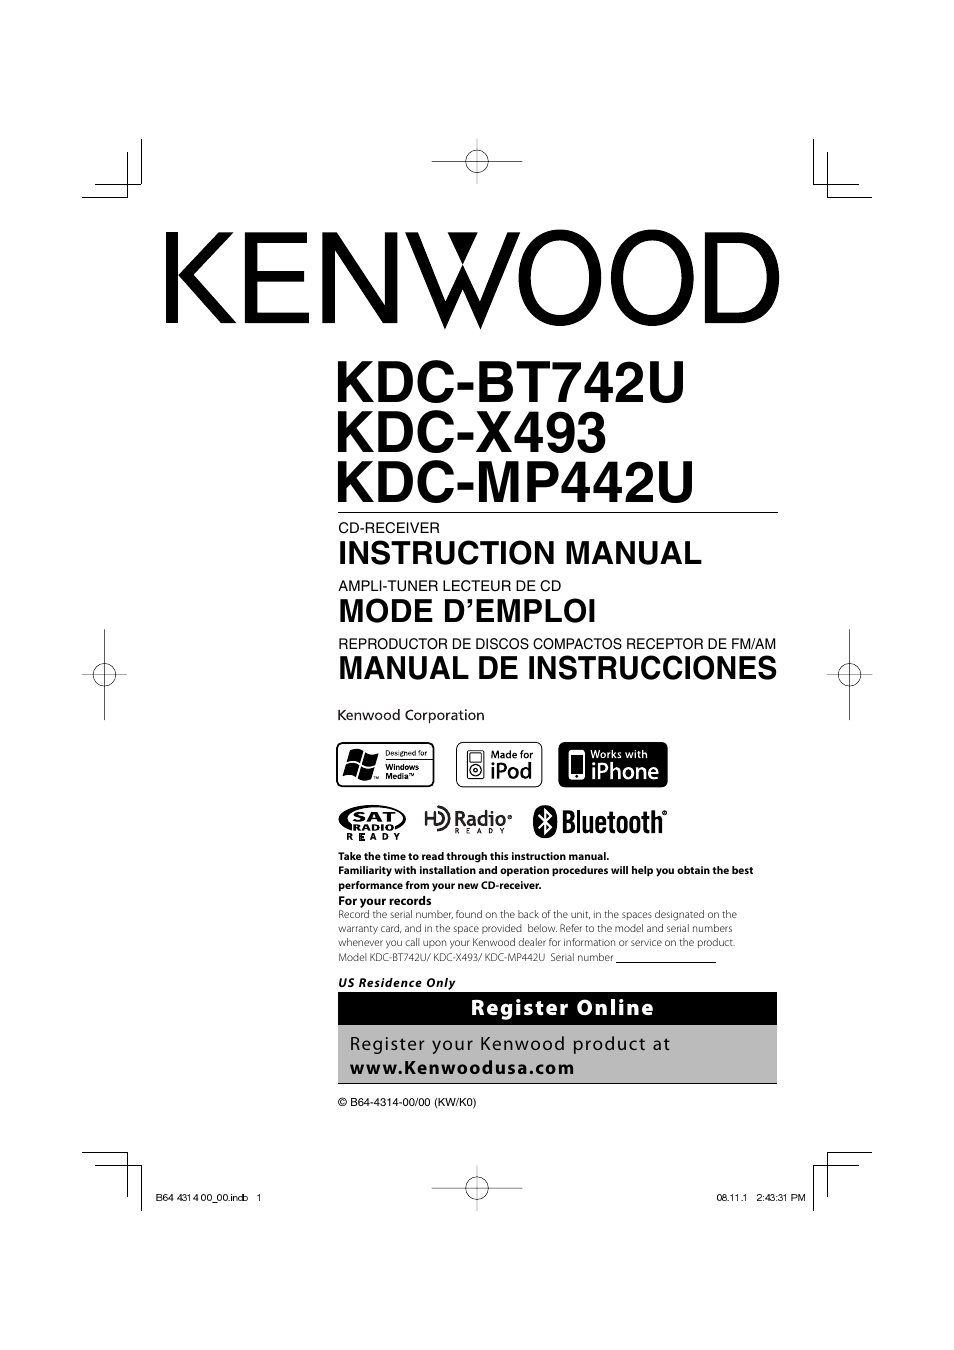 medium resolution of diagrams collection kenwood kdc bt742u page1 resize 665